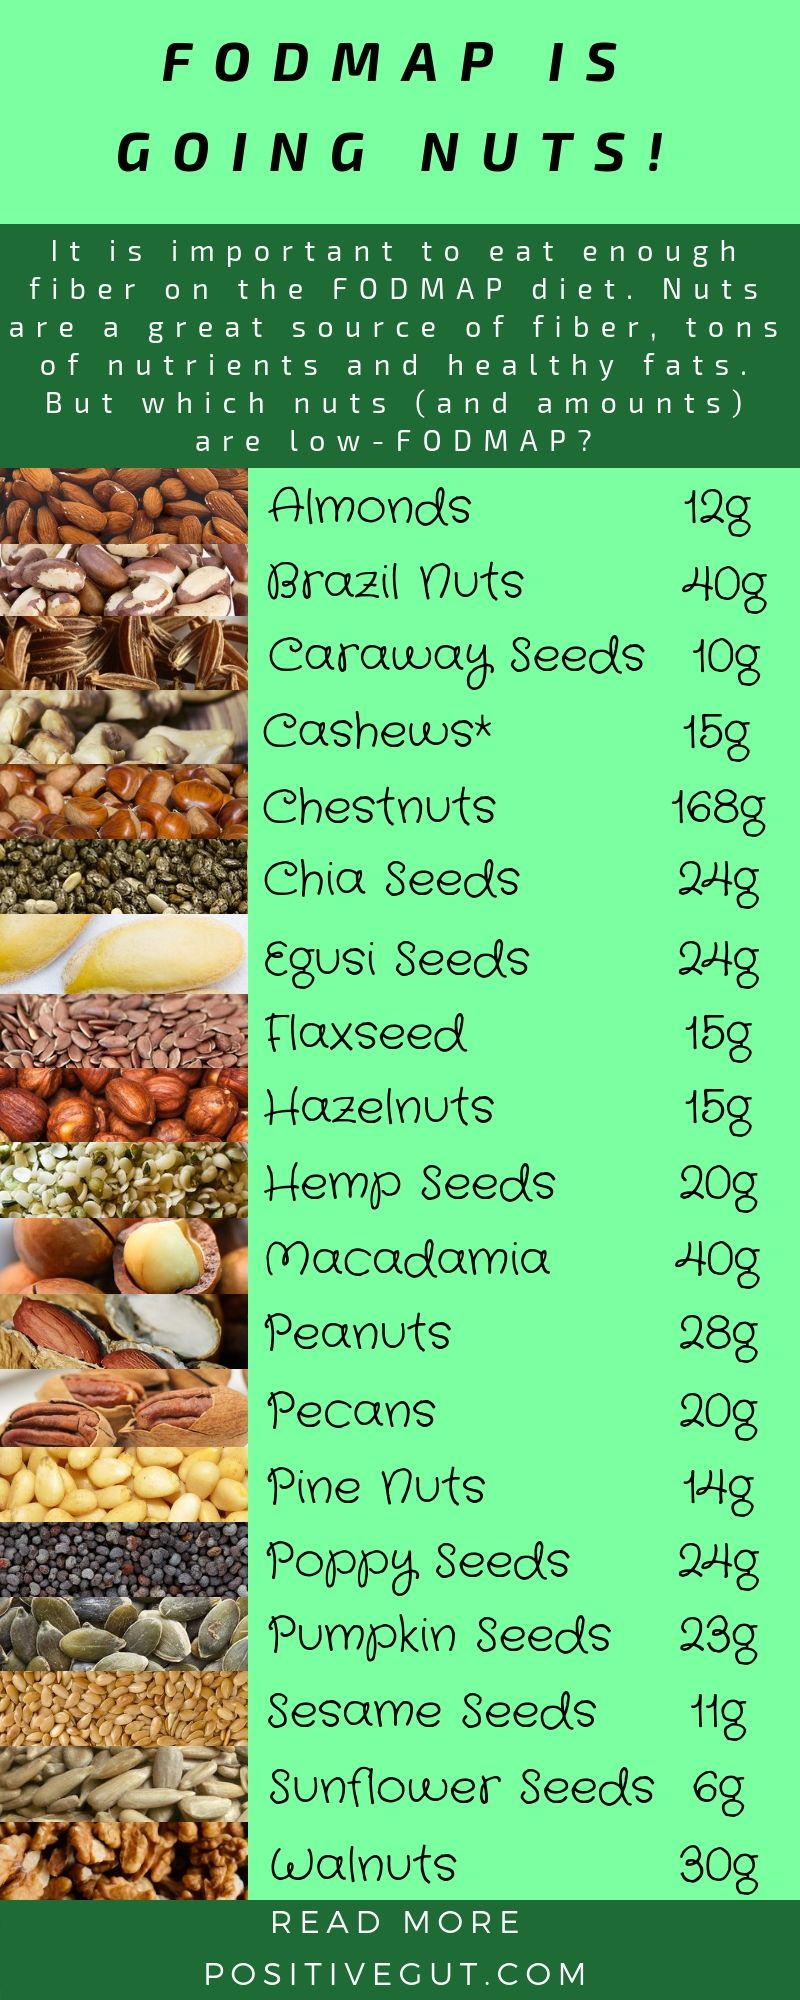 are peanuts allowed on a low fodmap diet?